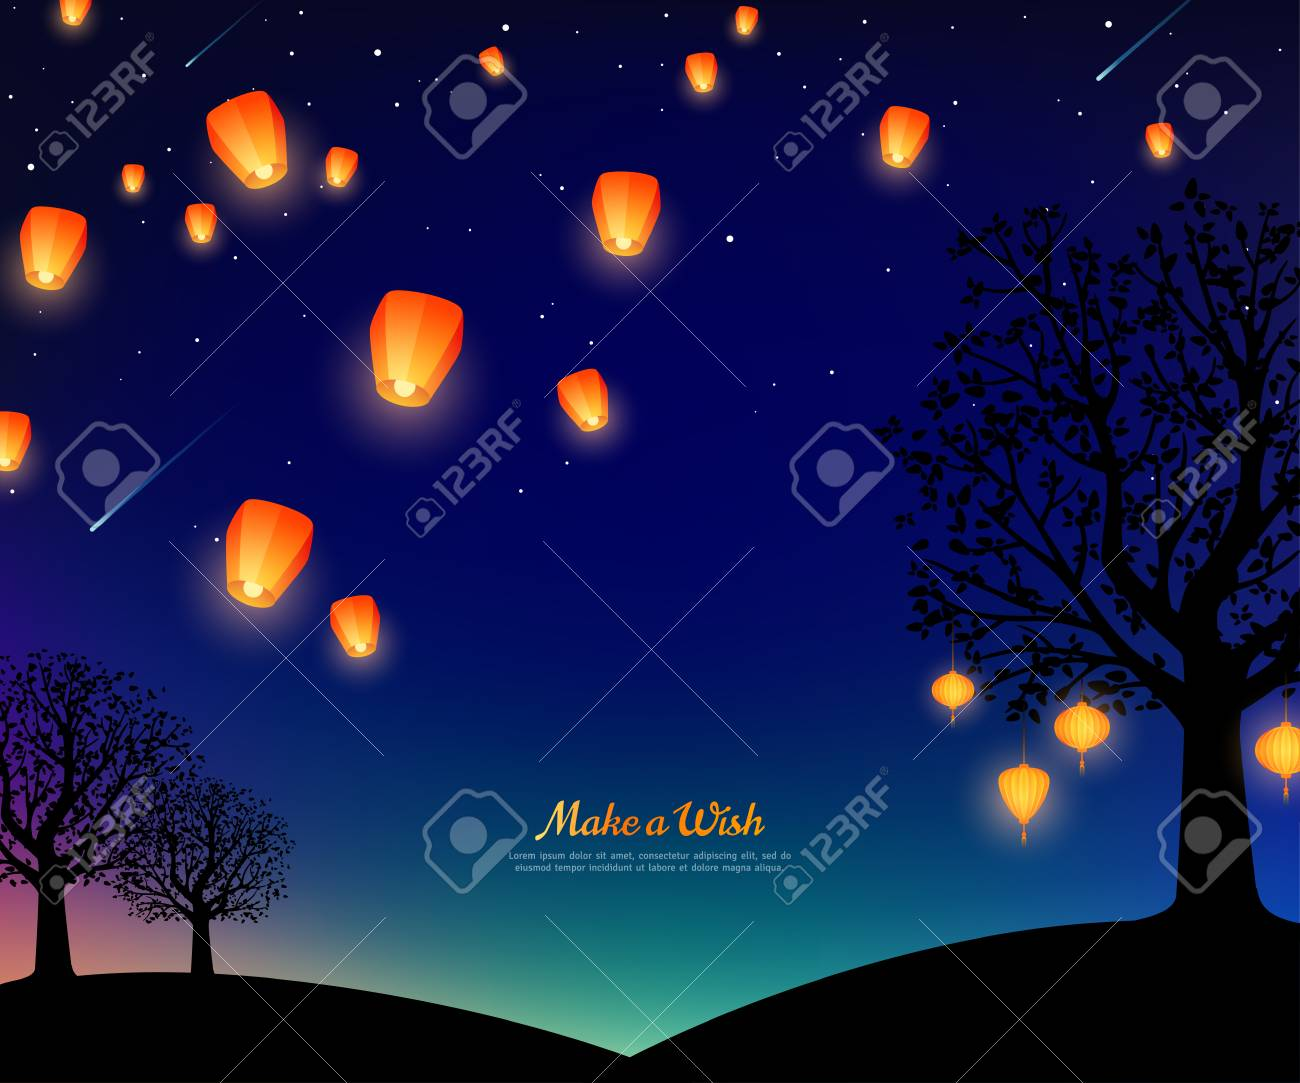 Landscape With Trees And Lanterns Floating At Night Starry Sky Royalty Free Cliparts Vectors And Stock Illustration Image 109790444